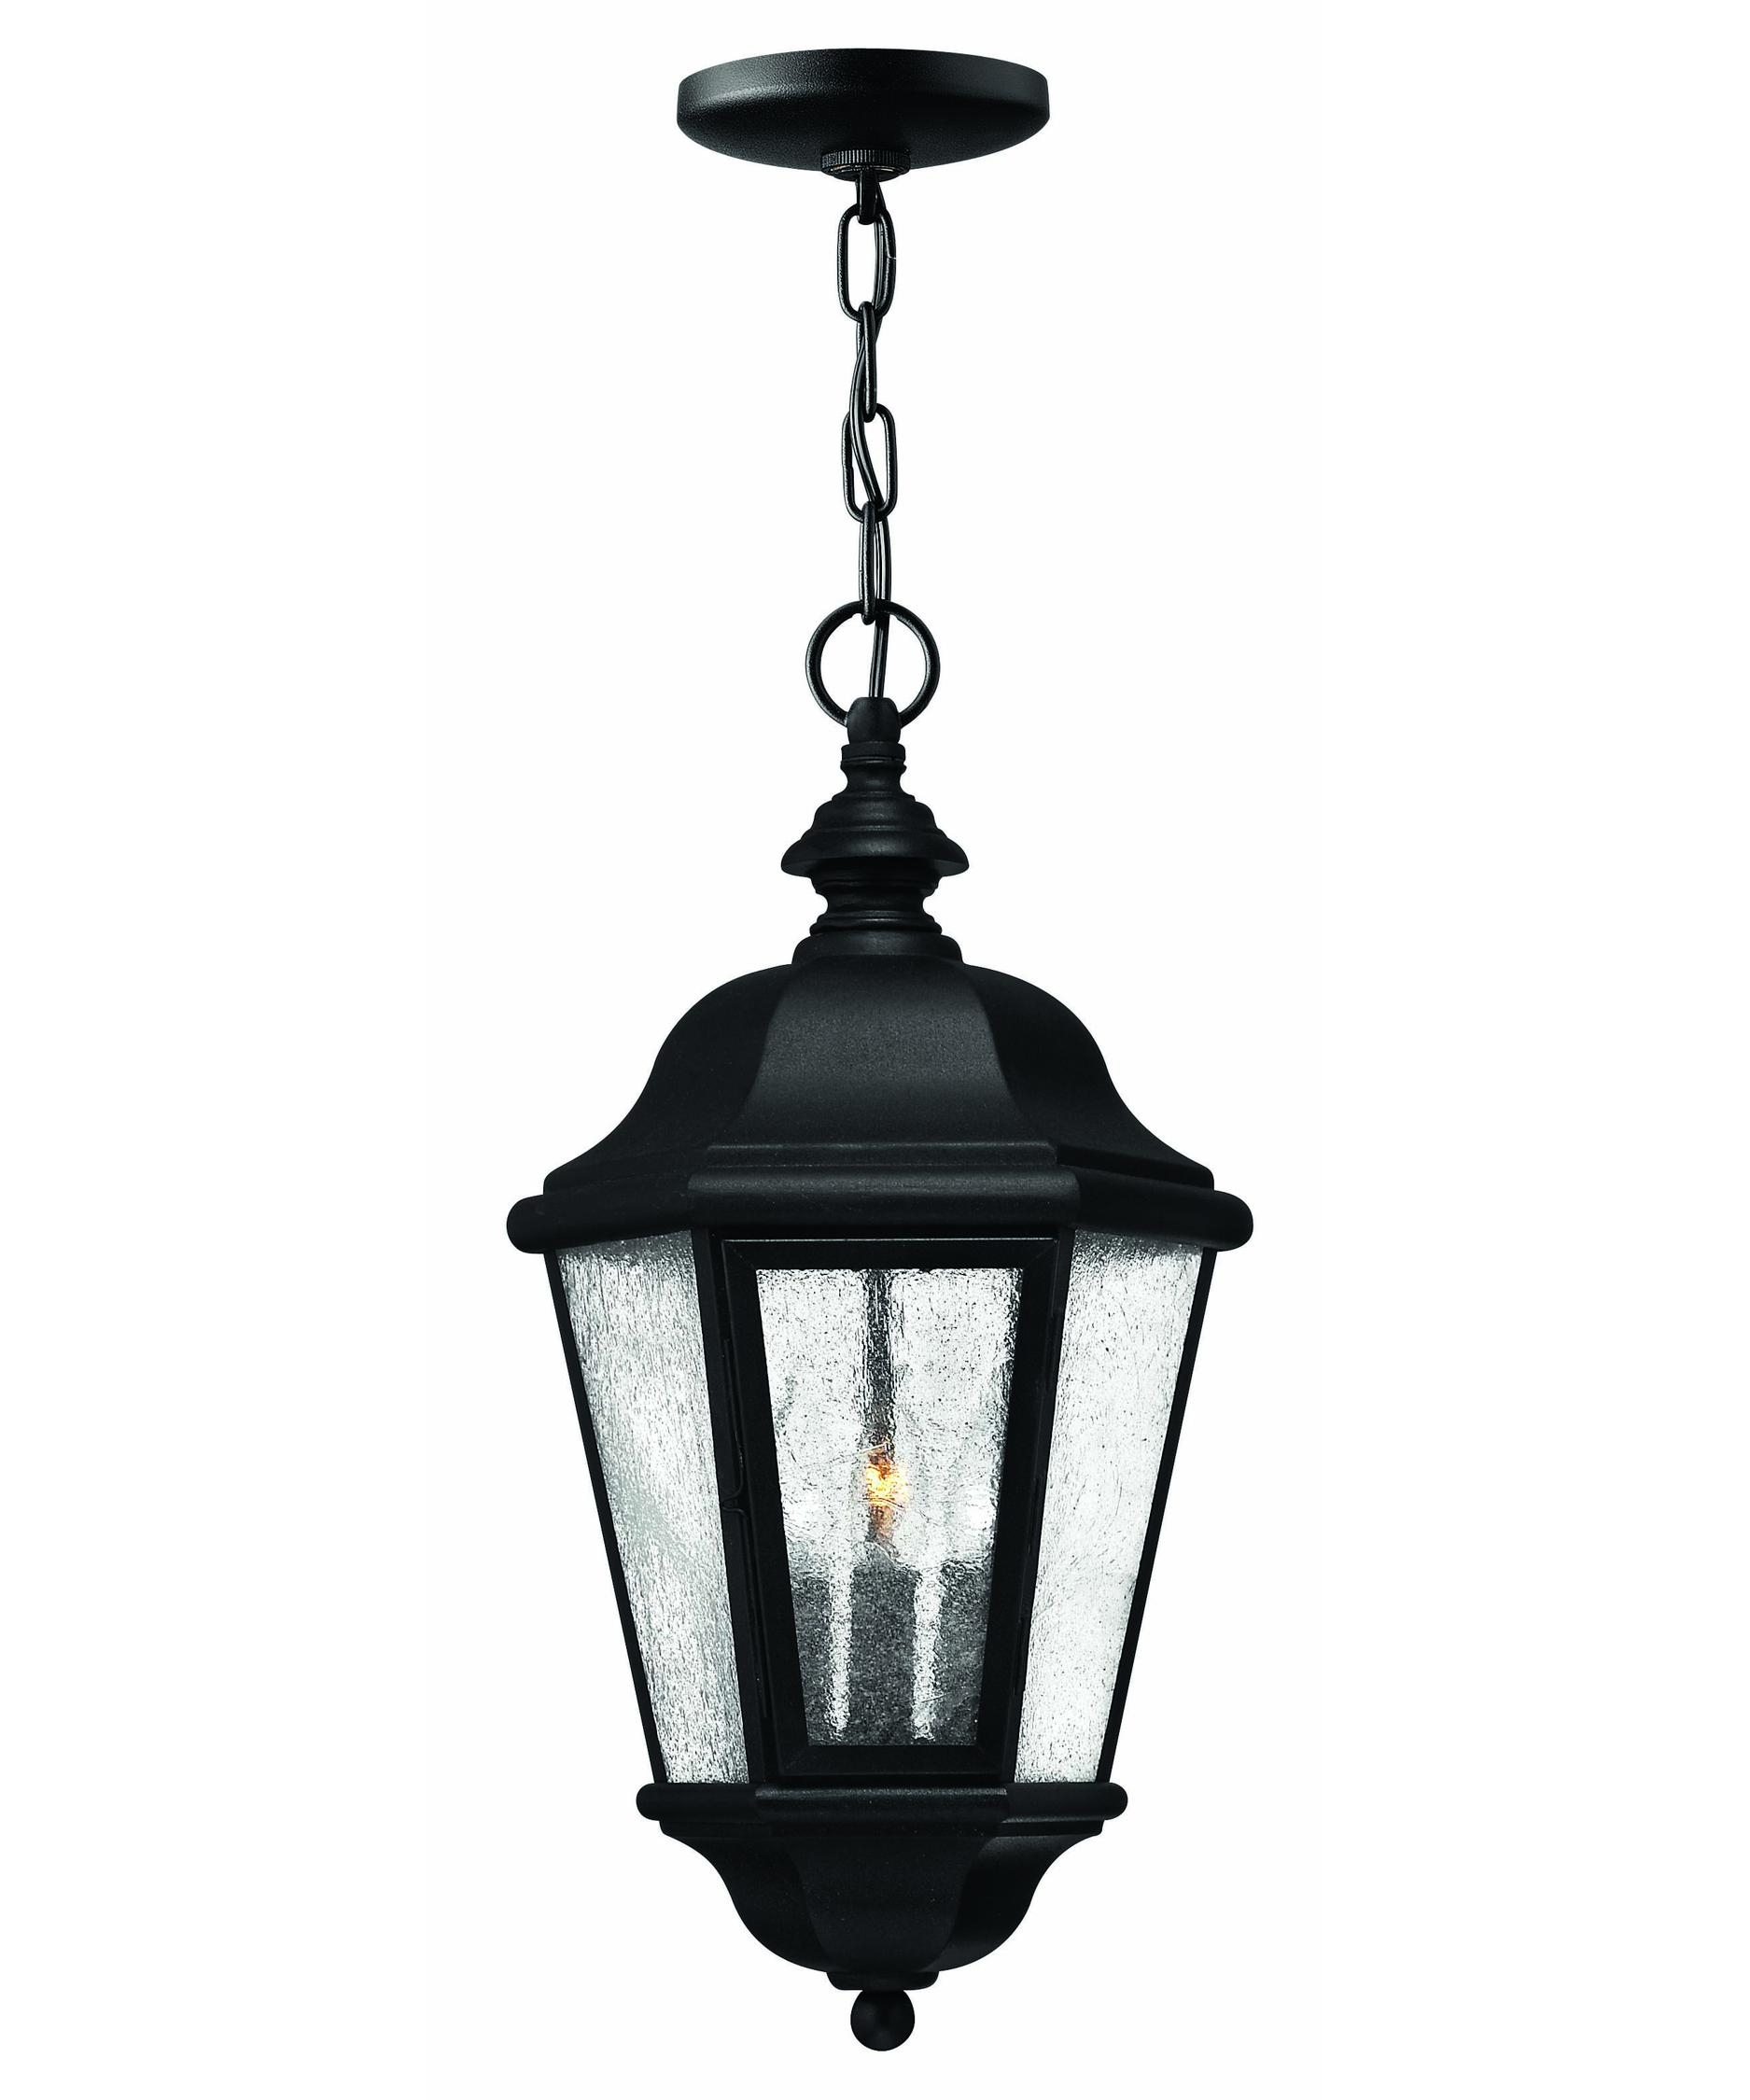 Hinkley Lighting 1672 Edgewater 10 Inch Wide 3 Light Outdoor Hanging For Outdoor Hanging Glass Lanterns (View 4 of 15)